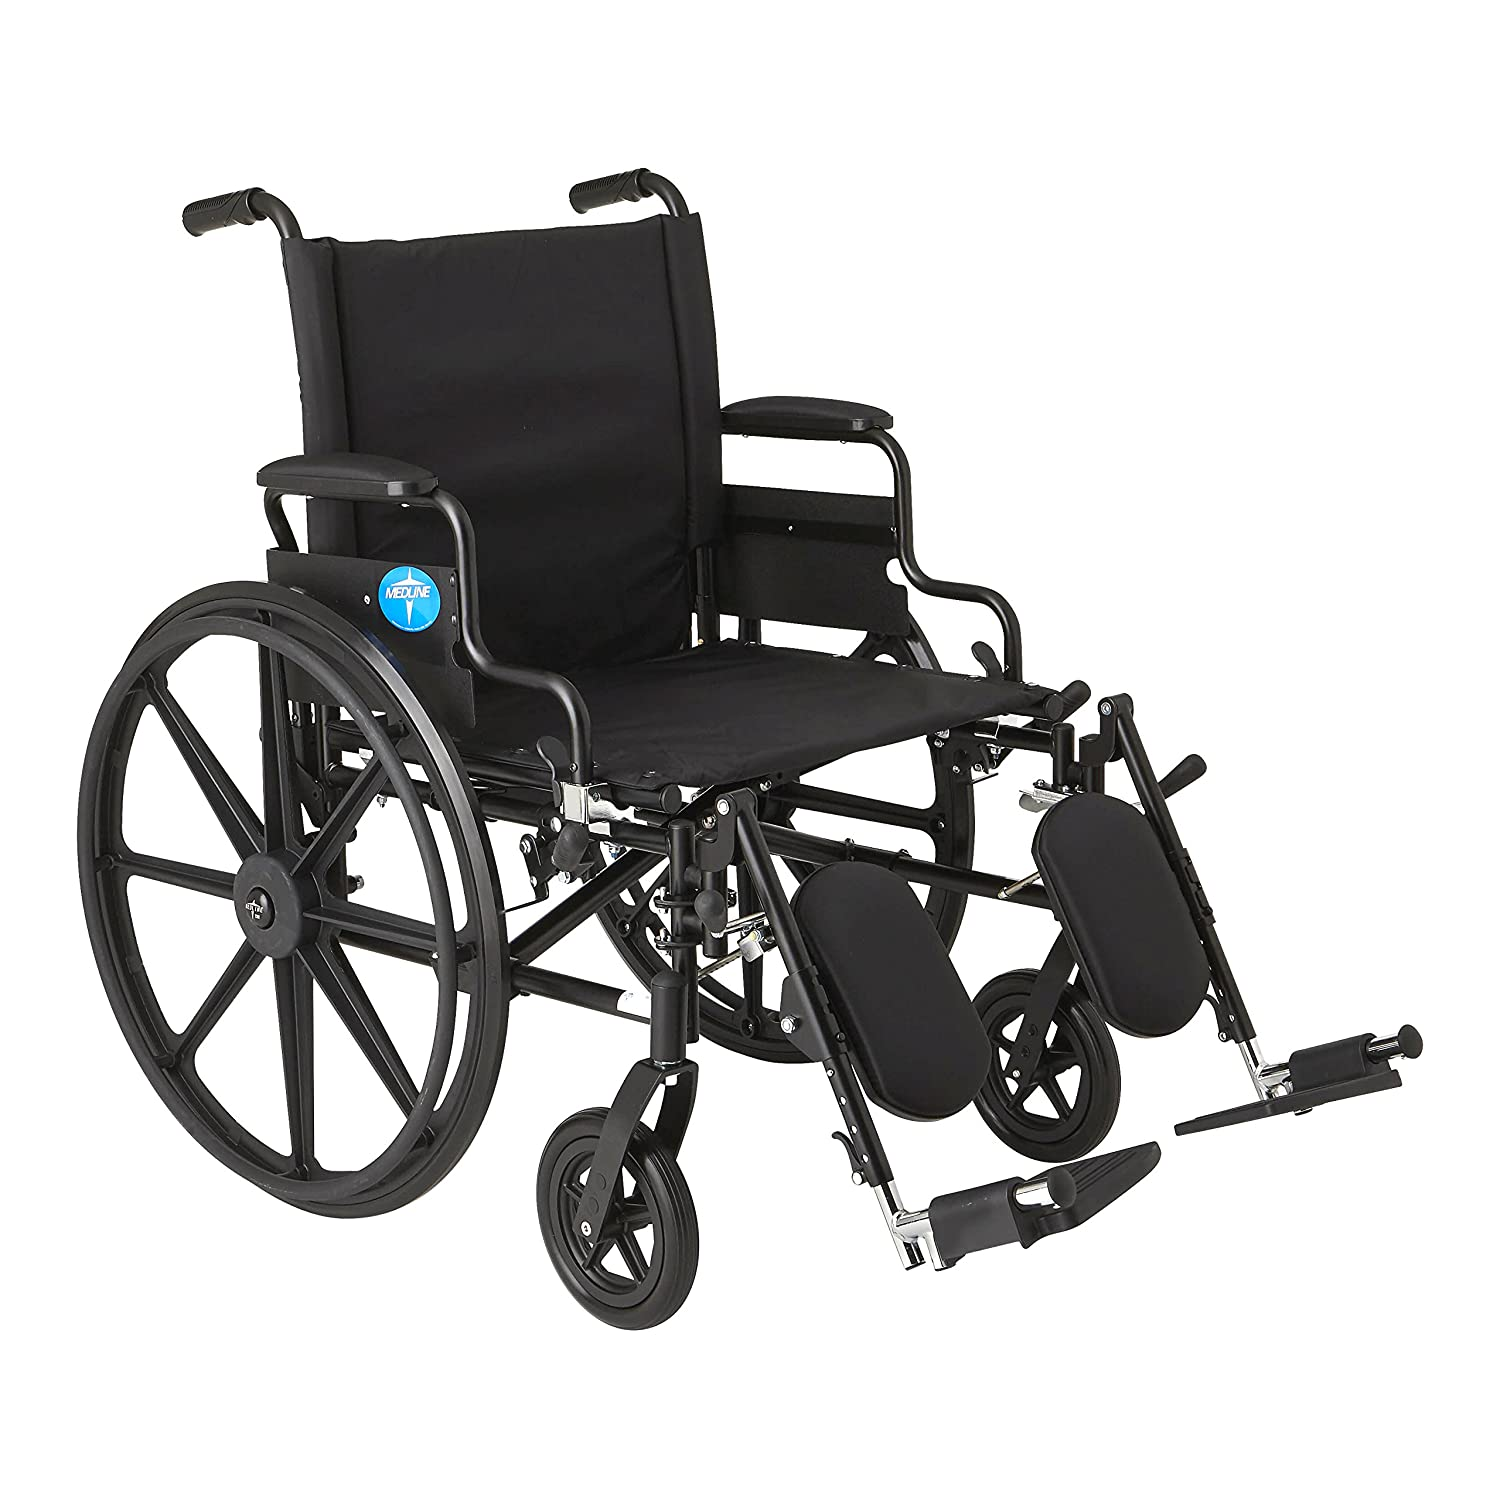 Top 5 Best Cheap Electric Wheelchairs In 2019 Reviews